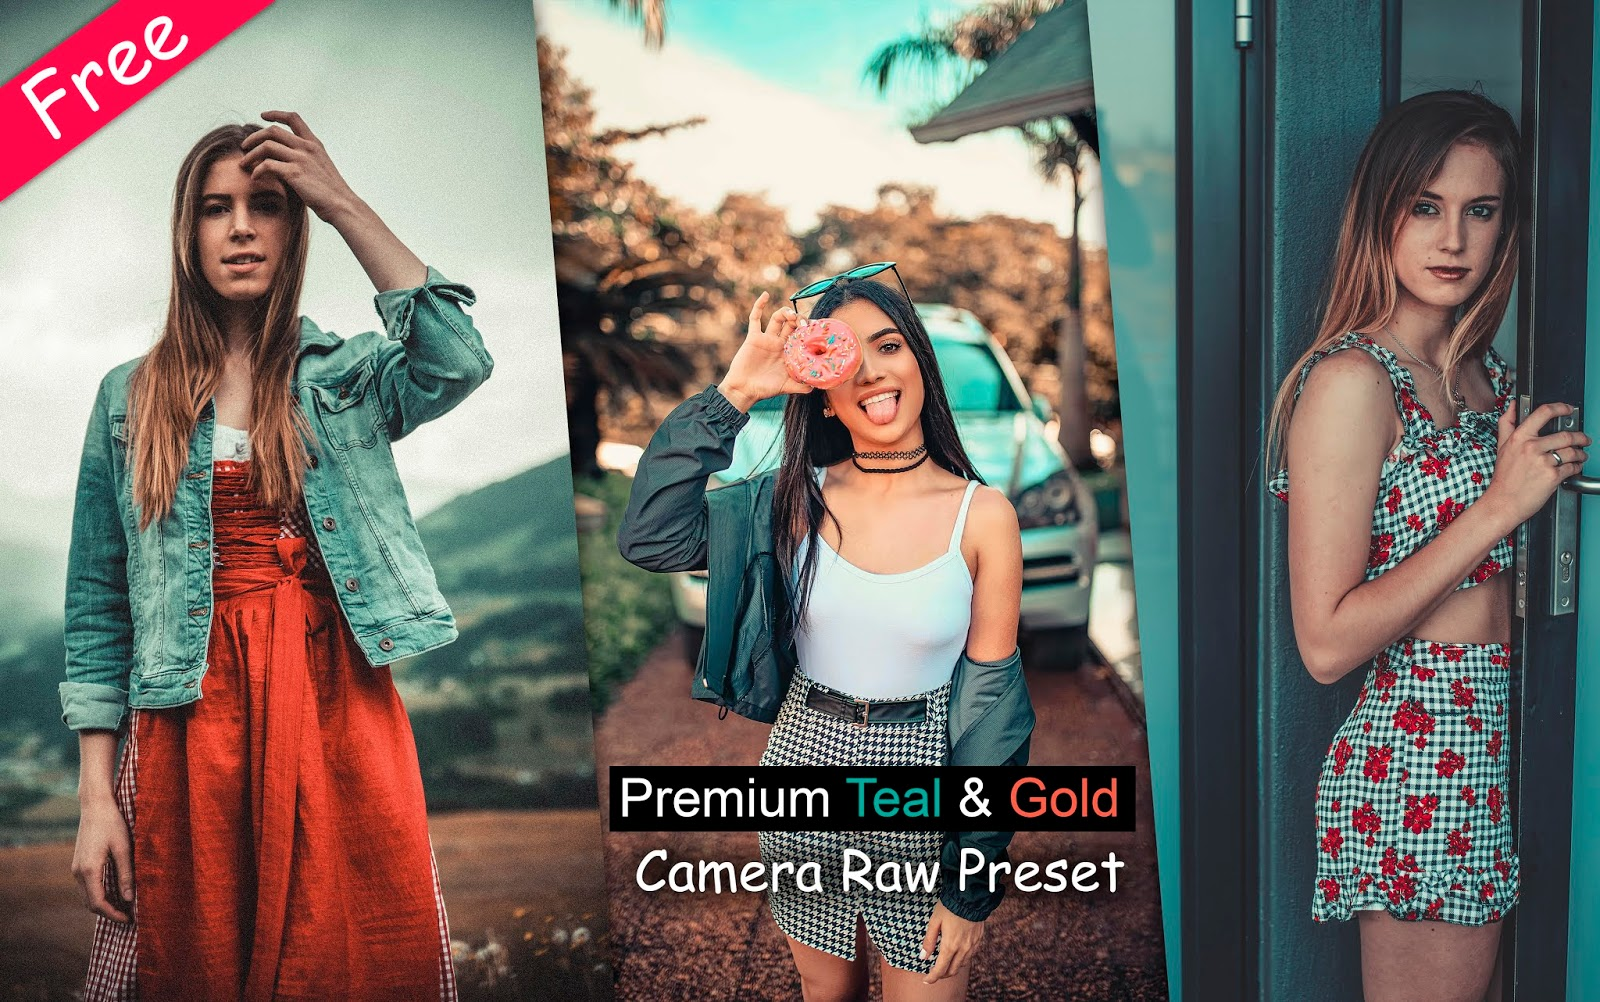 Download Premium Teal & Gold Camera Raw Preset for Free | How to Edit Teal & Orange in Camera Raw